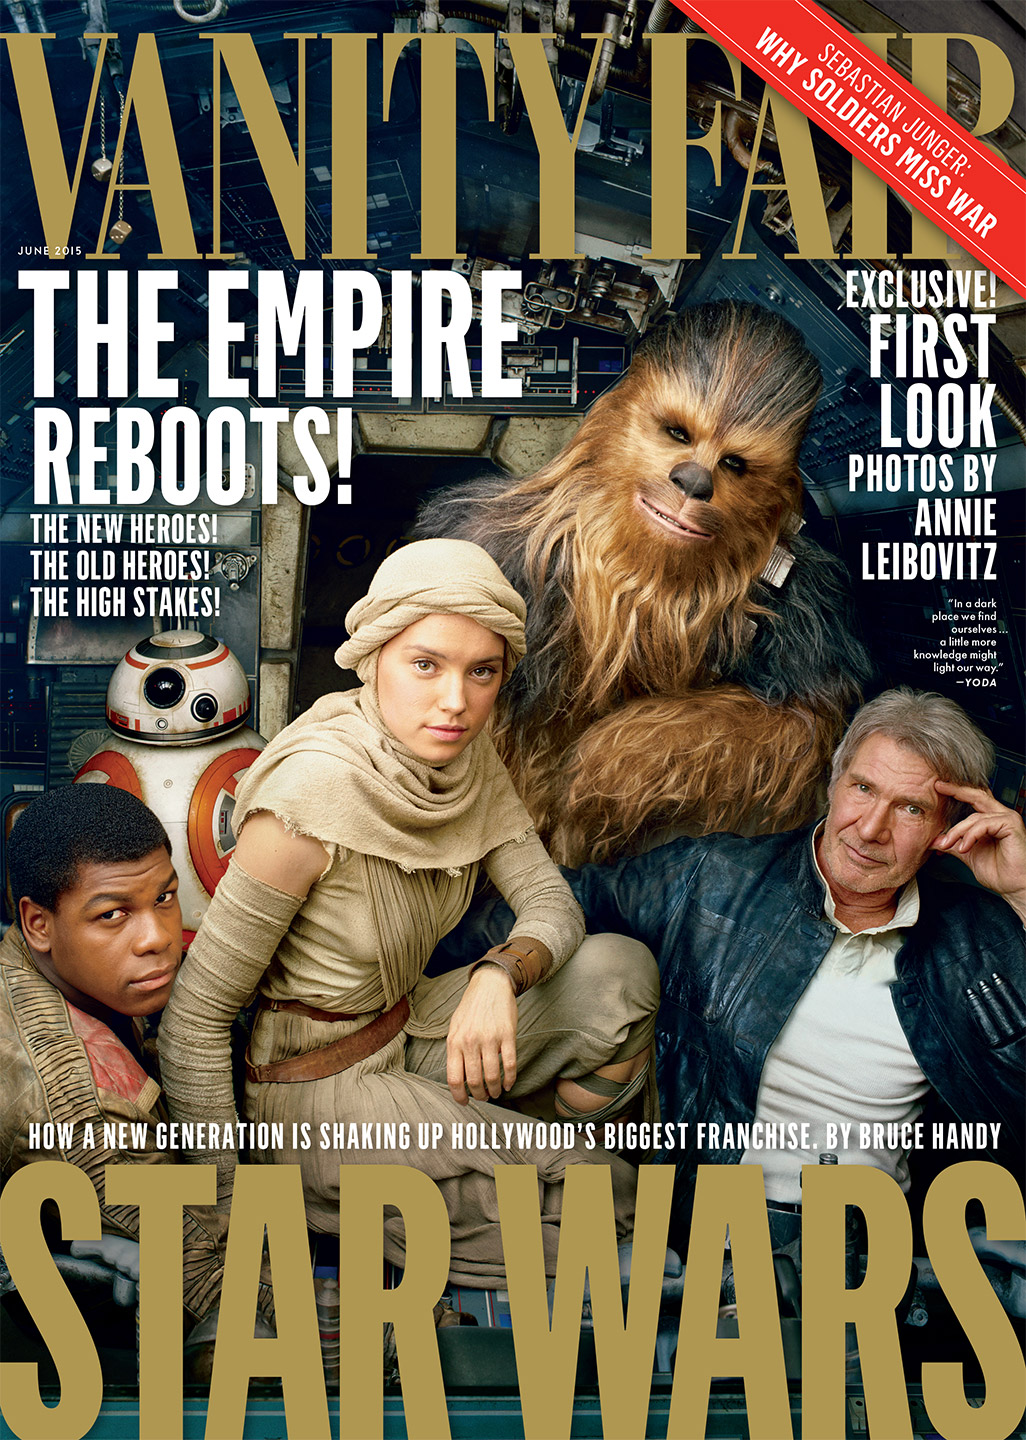 star_wars_vanity_fair_cover_1